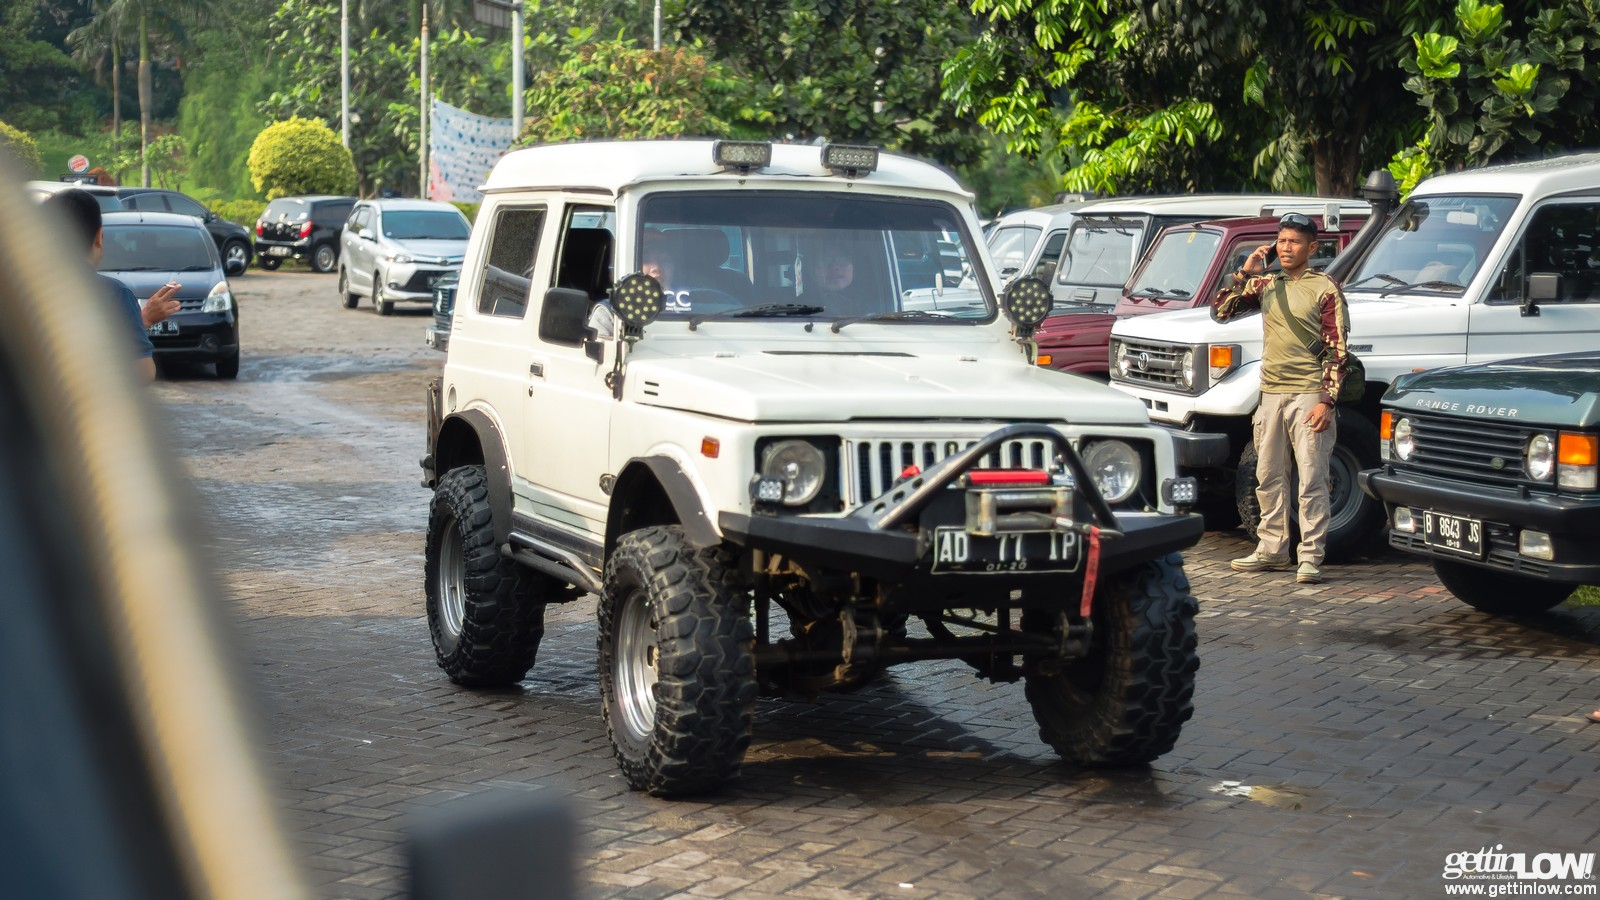 4x4 Enthusiast Meet Up - 18 Feb 2017